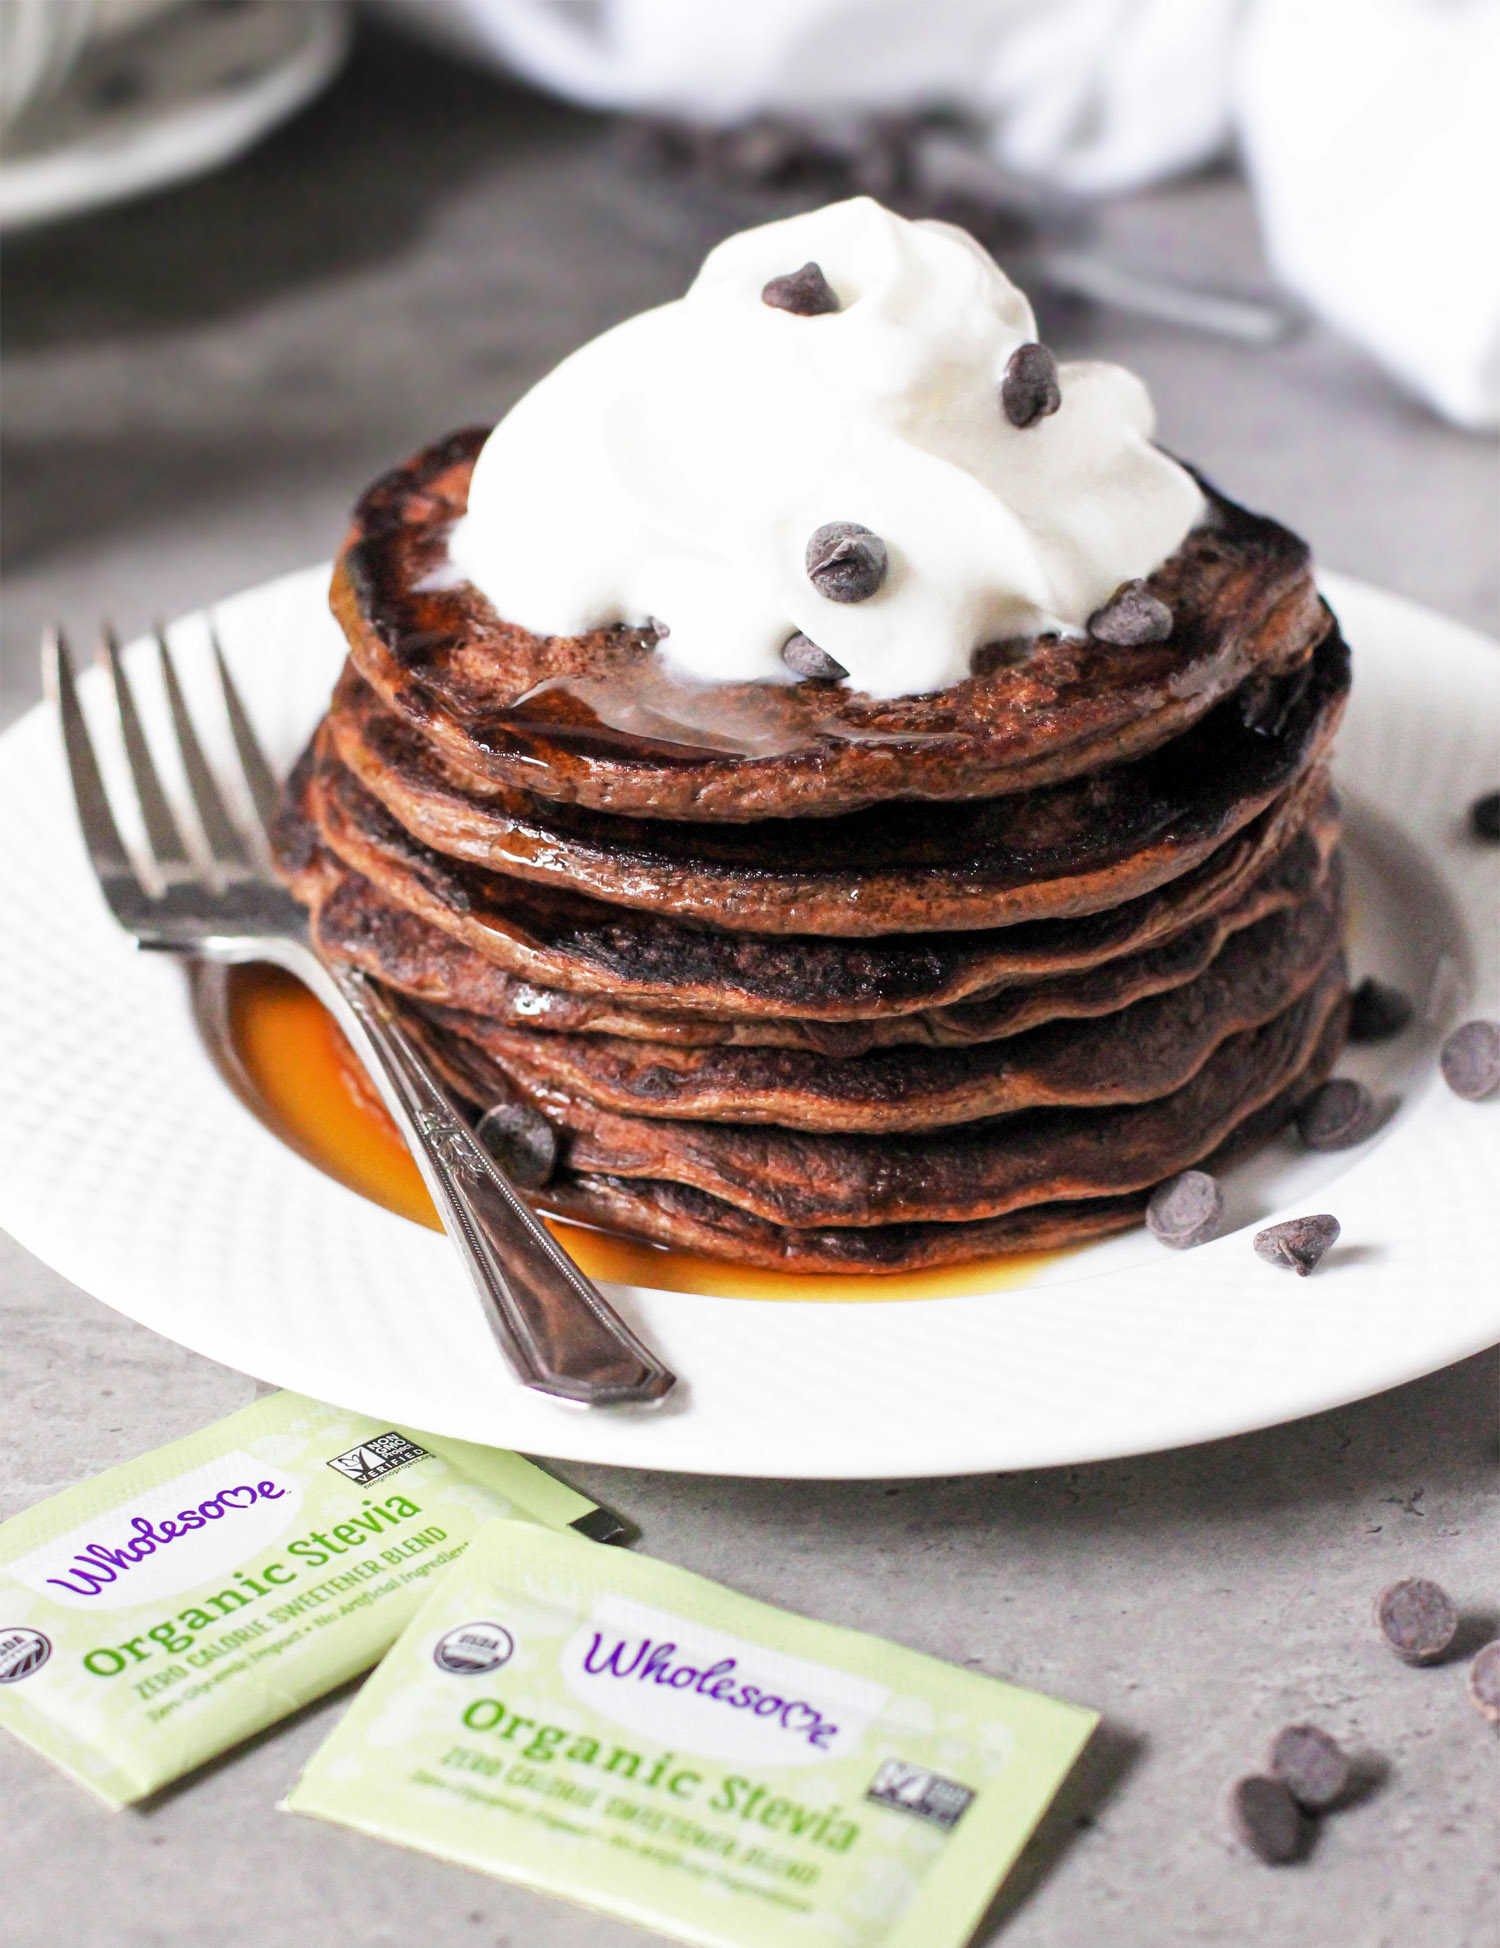 These Healthy Chocolate Protein Pancakes are uber light and fluffy, and they're perfectly sweet and chocolatey too. One bite and you won't be able to tell they're gluten free, sugar free, low fat, and packed with a whopping 18g of protein per serving!